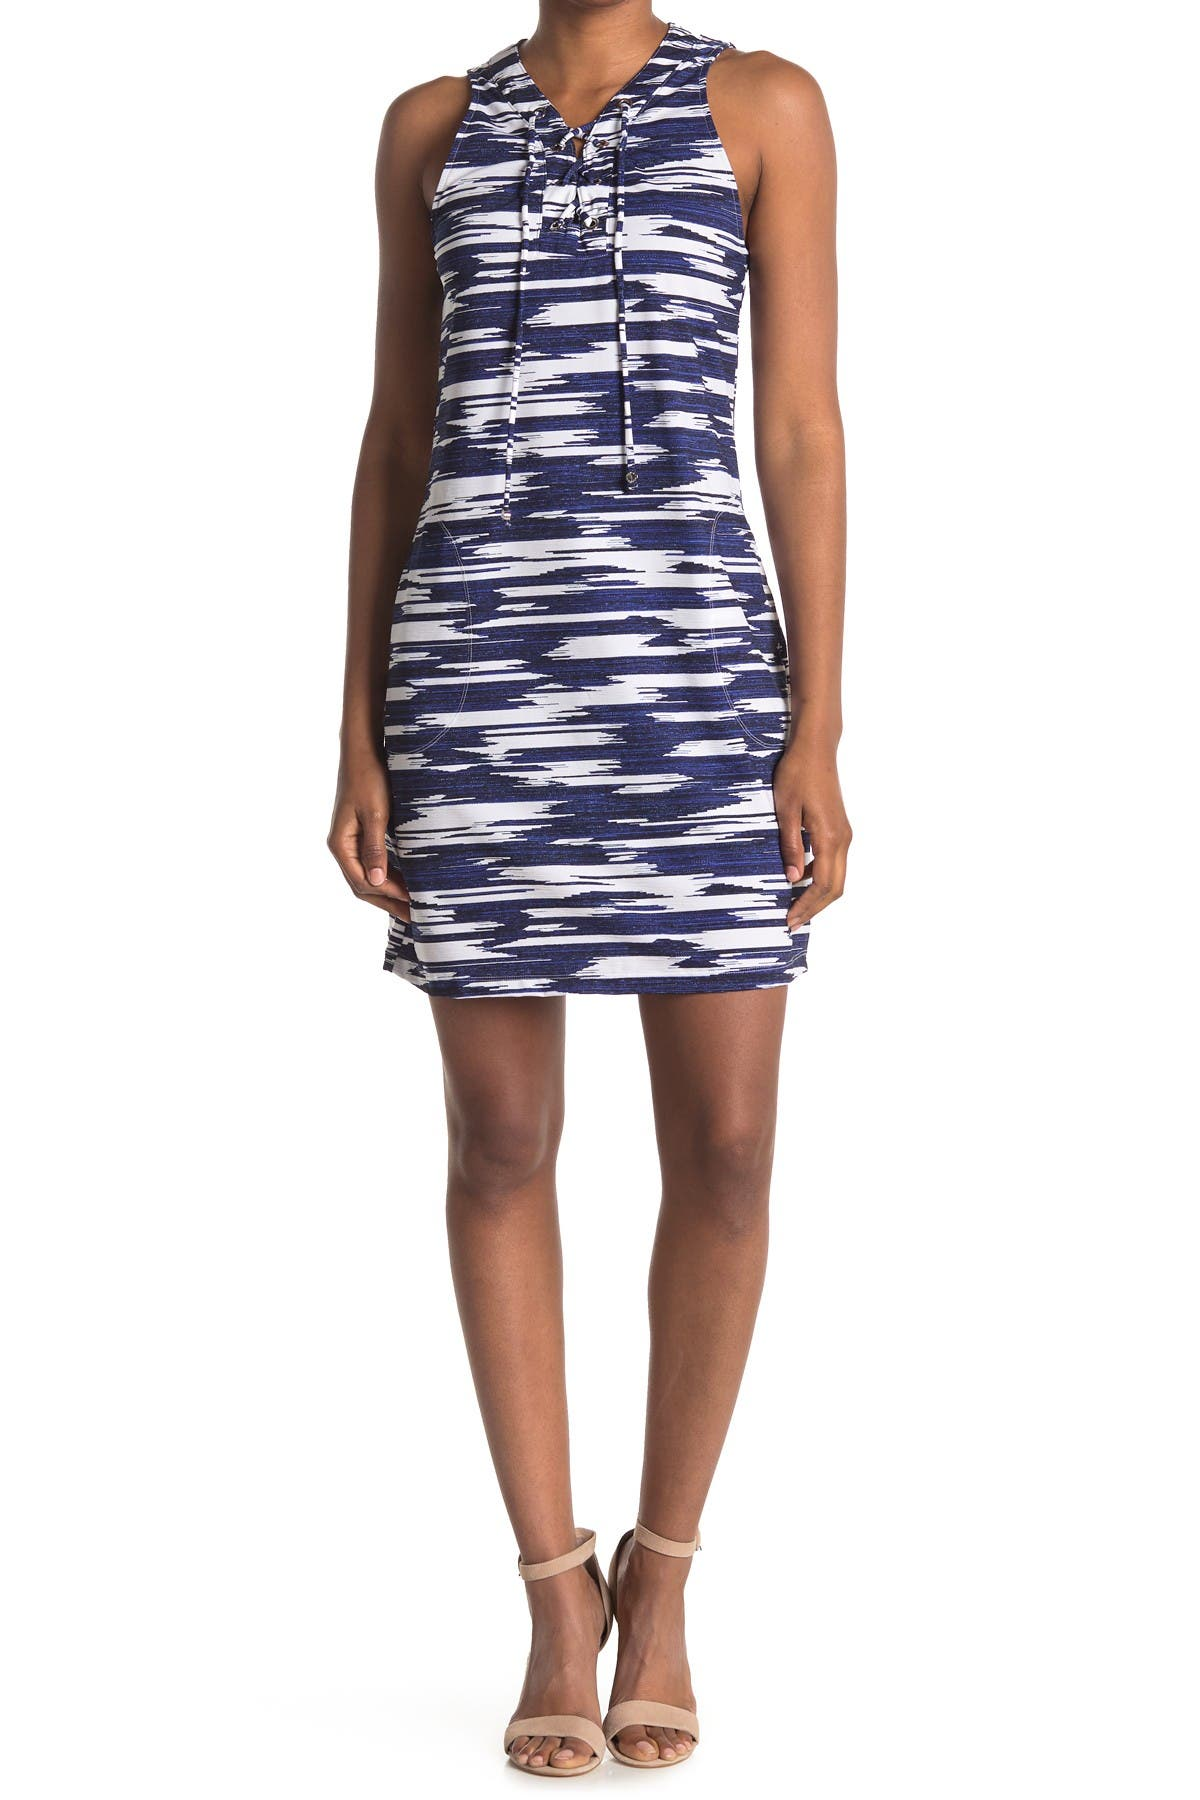 Image of Tommy Bahama Canyon Sky Cover-Up Spa Dress